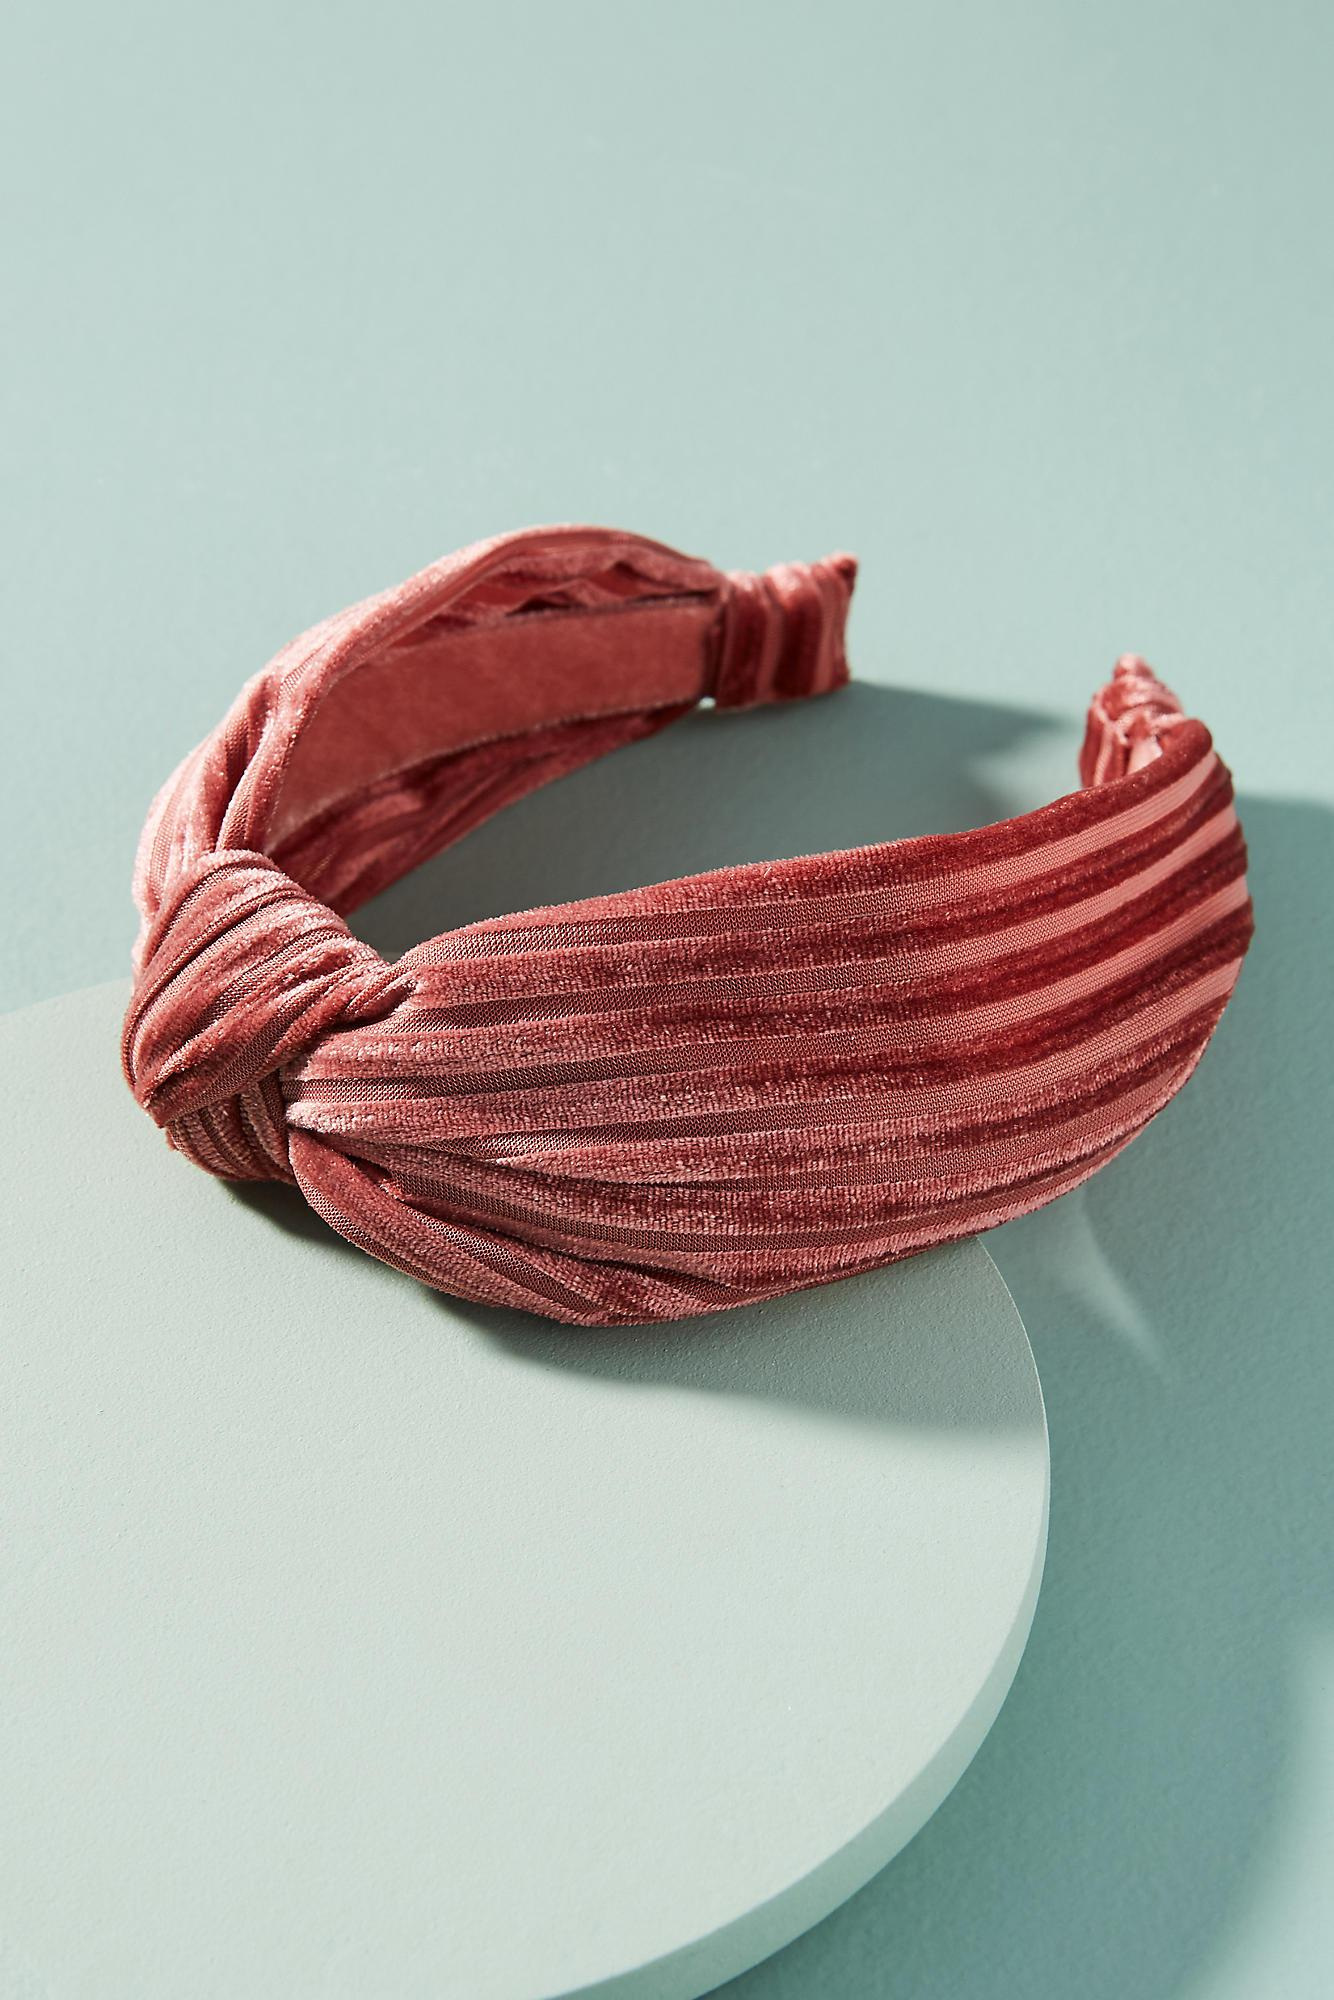 Anthropologie South Beach Knotted Headband aAKeRr